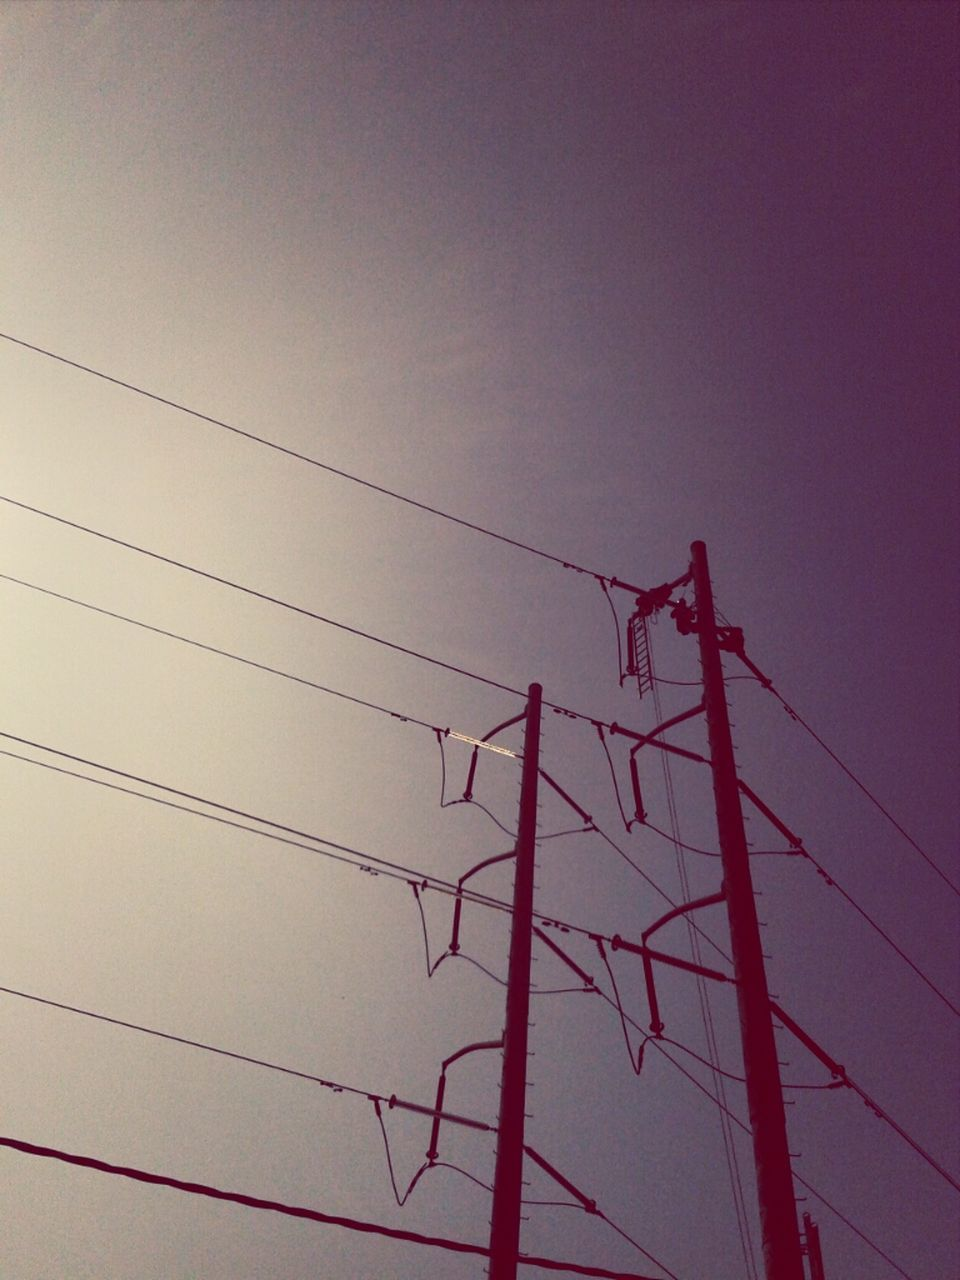 cable, electricity, connection, power supply, power line, low angle view, electricity pylon, no people, fuel and power generation, silhouette, sky, technology, sunset, day, outdoors, nature, telephone line